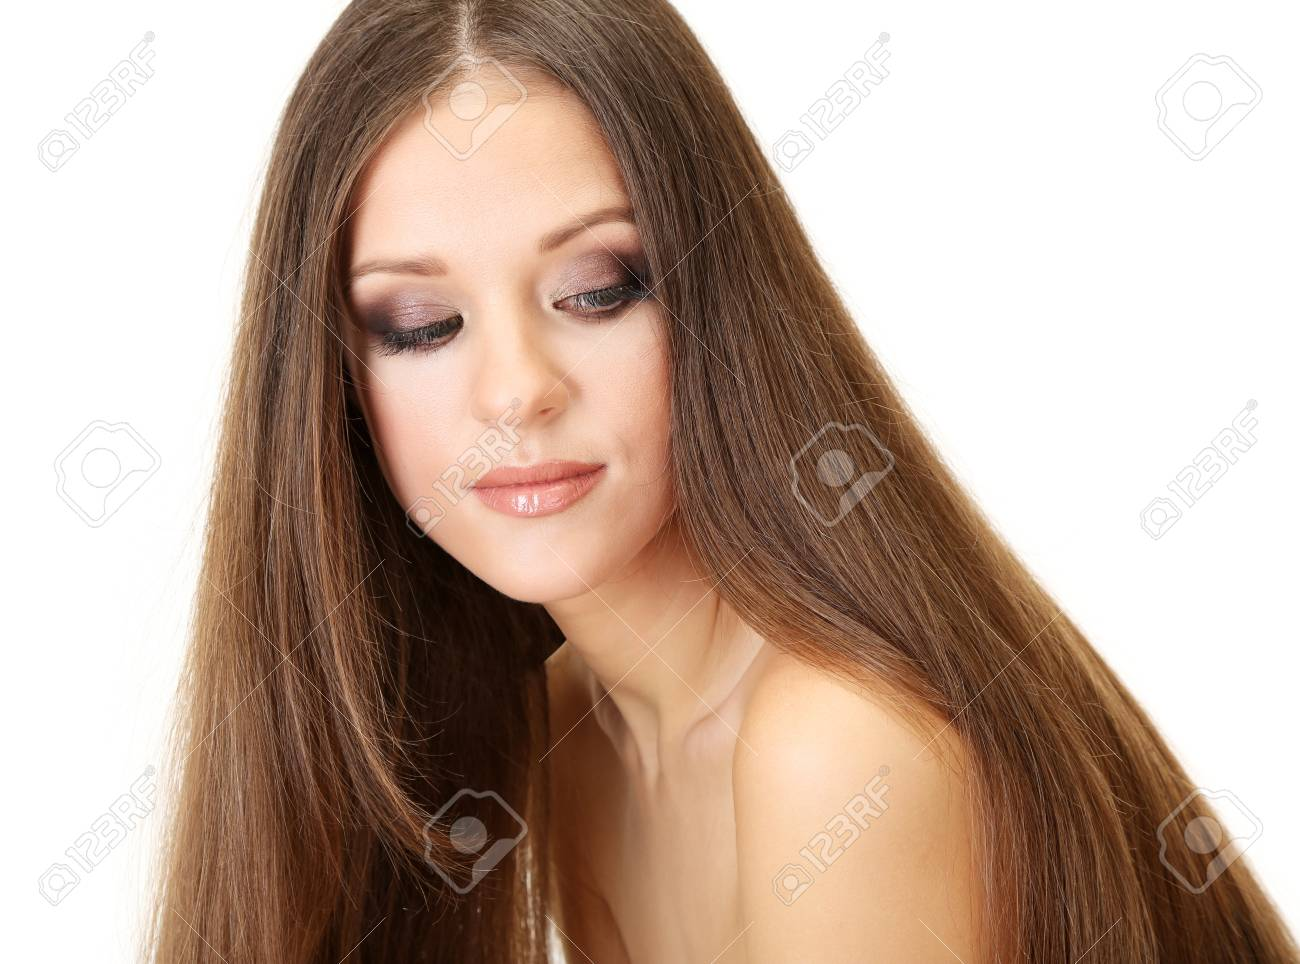 Portrait of beautiful woman with long hair, isolated on white Stock Photo - 19035155